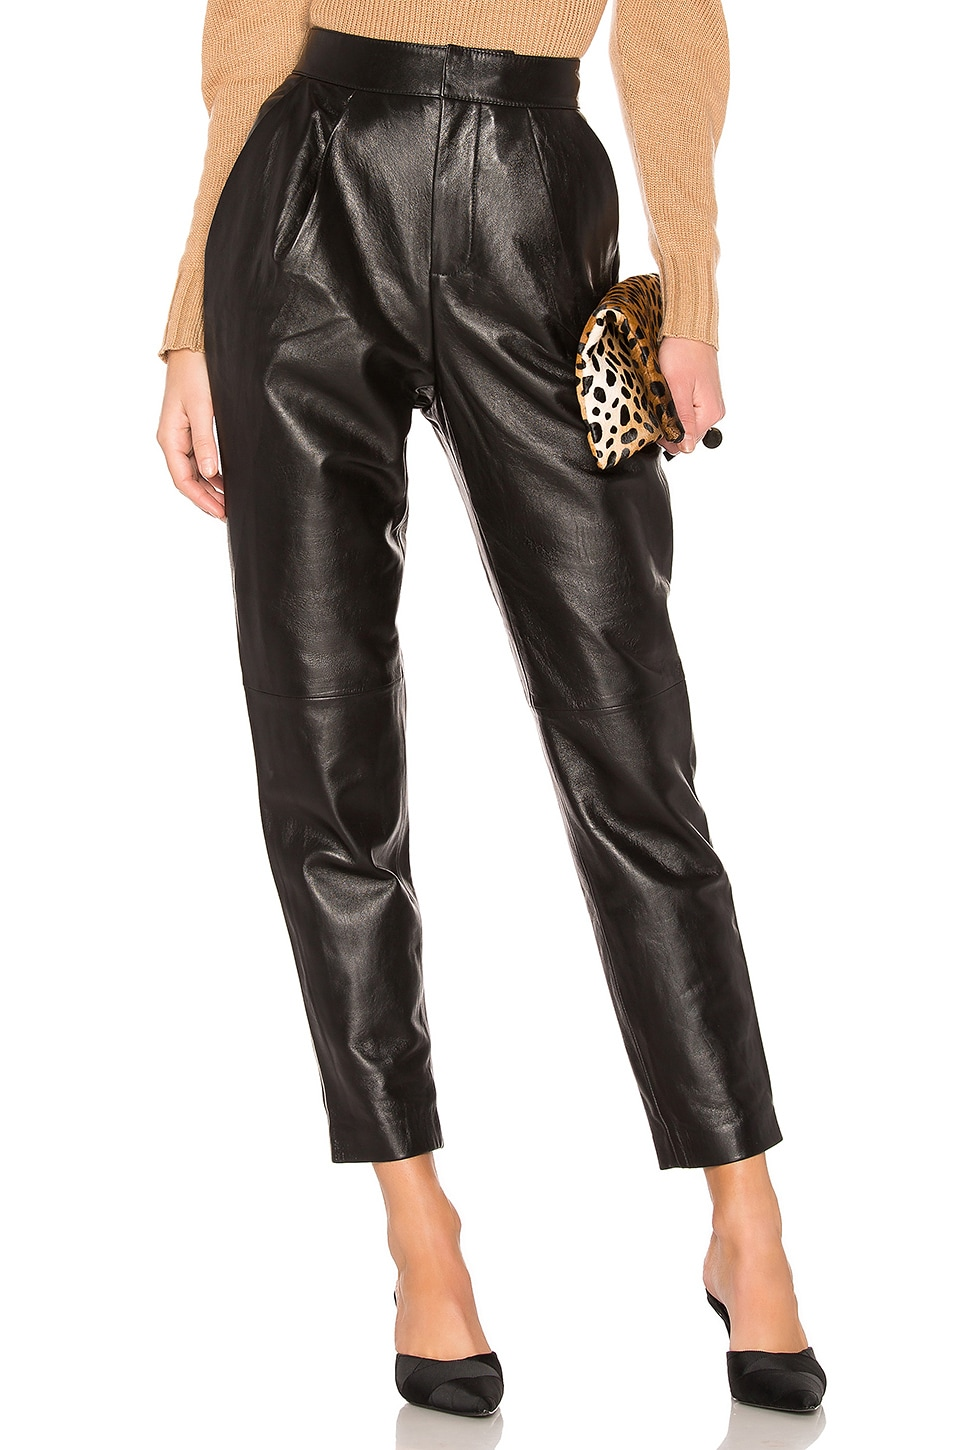 L'Academie The Bisous Leather Pant in Black